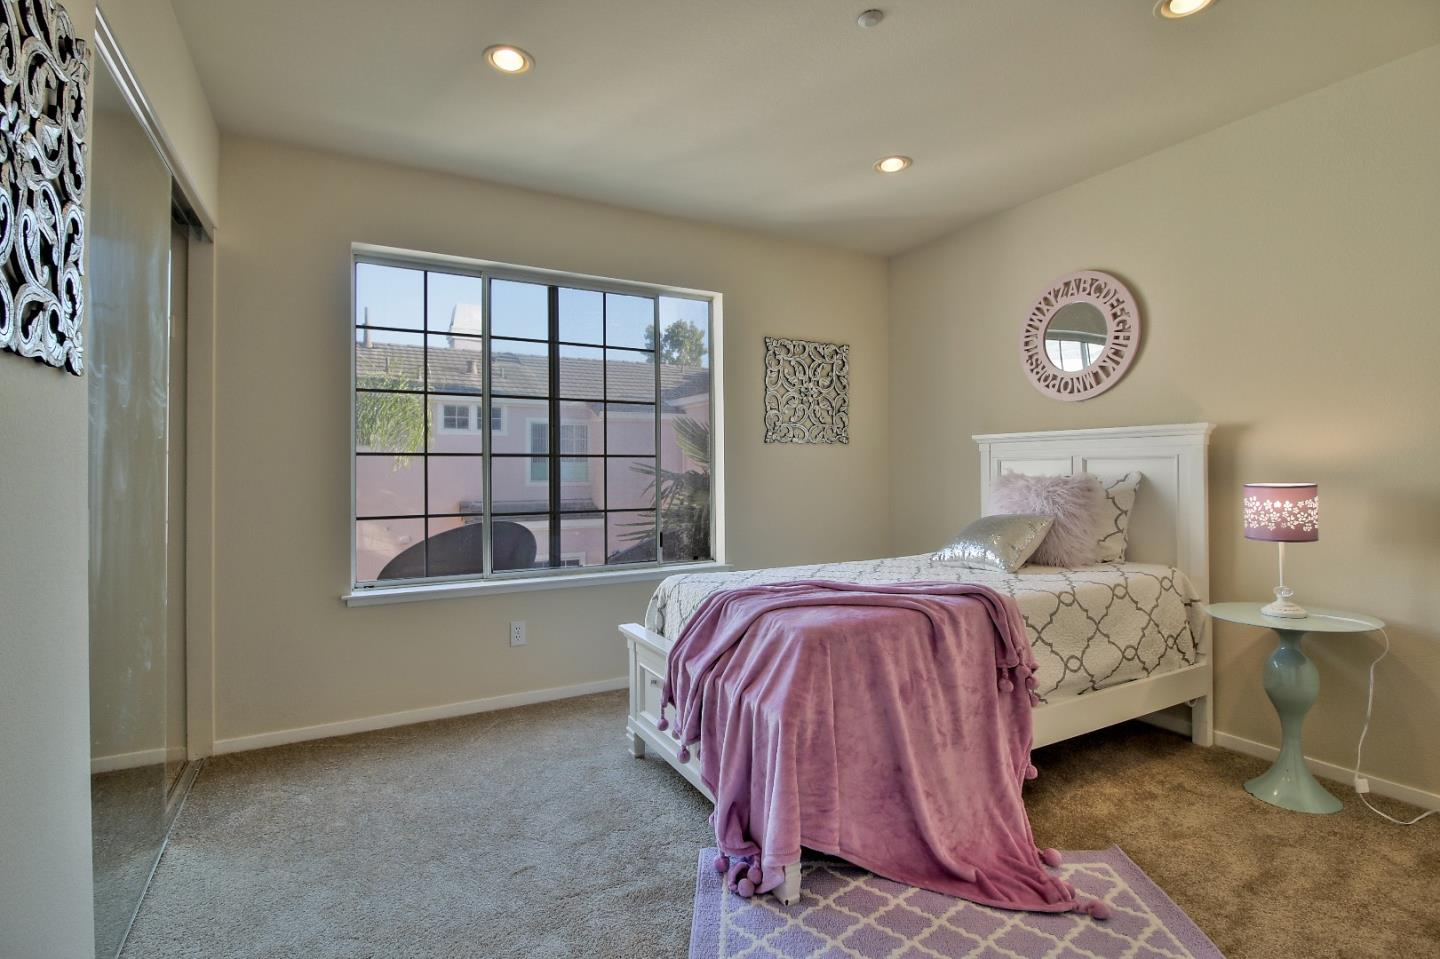 372 Montecito Way Milpitas, CA 95035 - MLS #: ML81722262